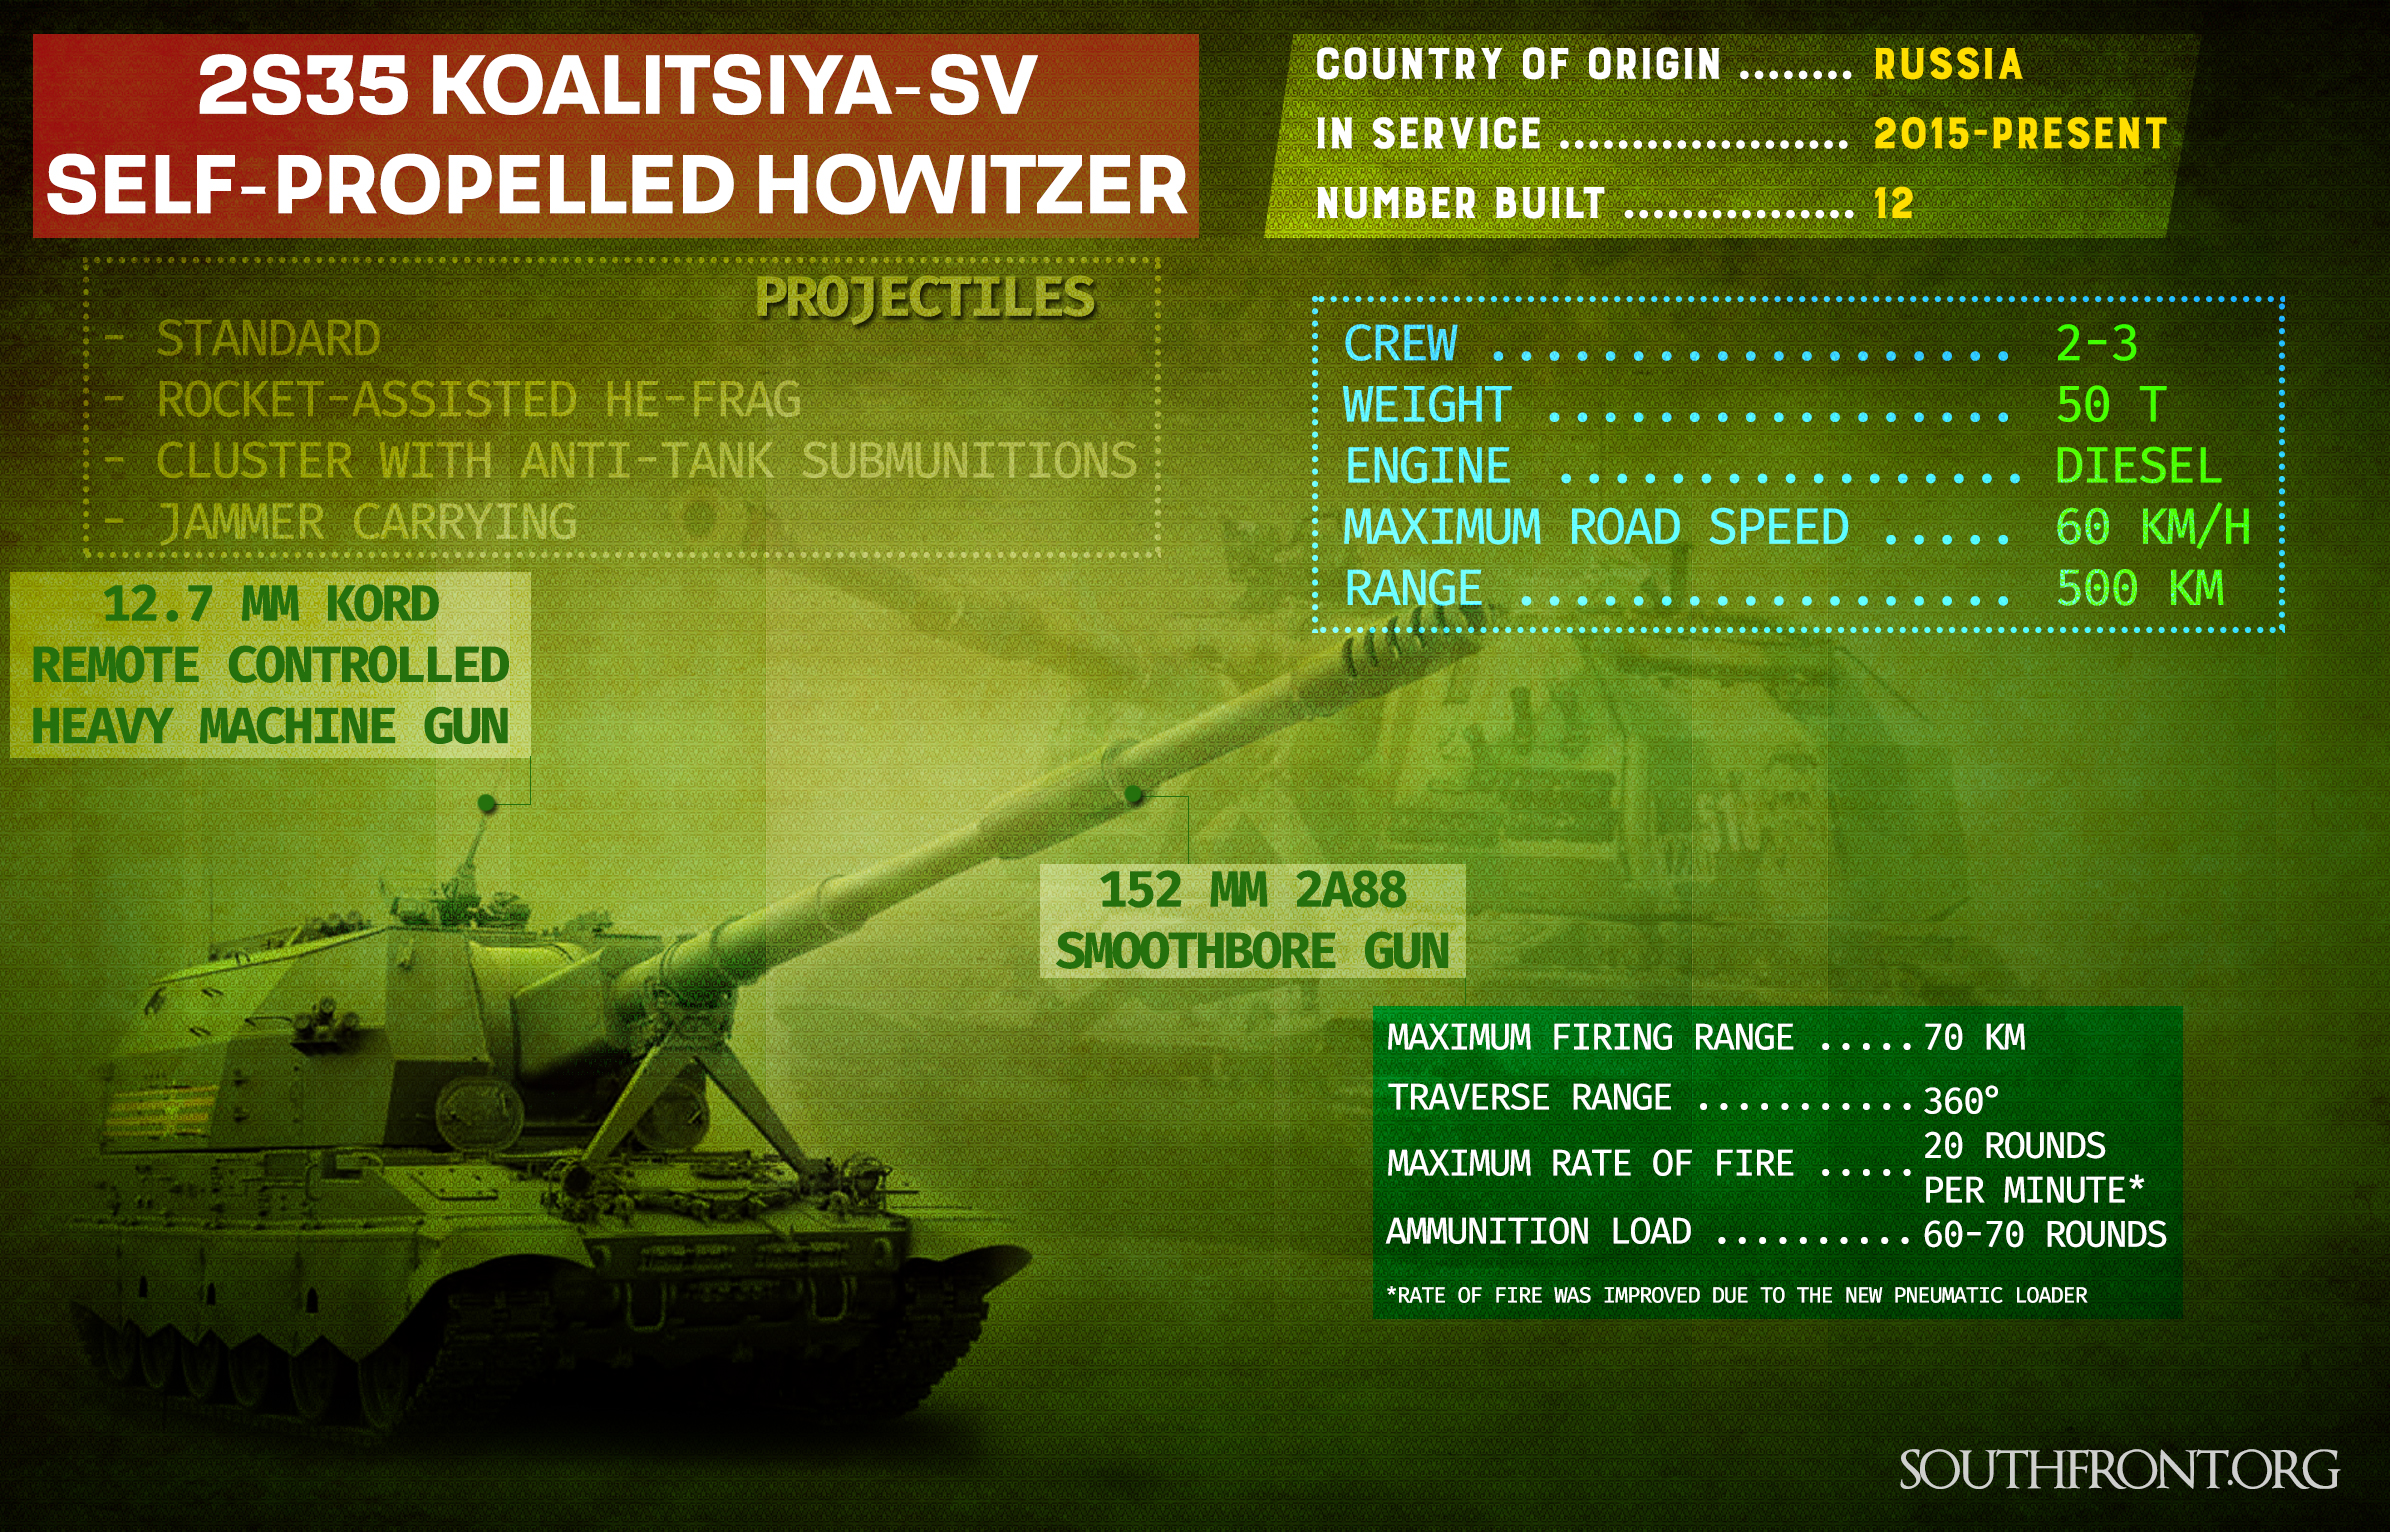 First Batch of Russia's Experimental Koalitsiya-SV Self-Propelled Howitzer Produced